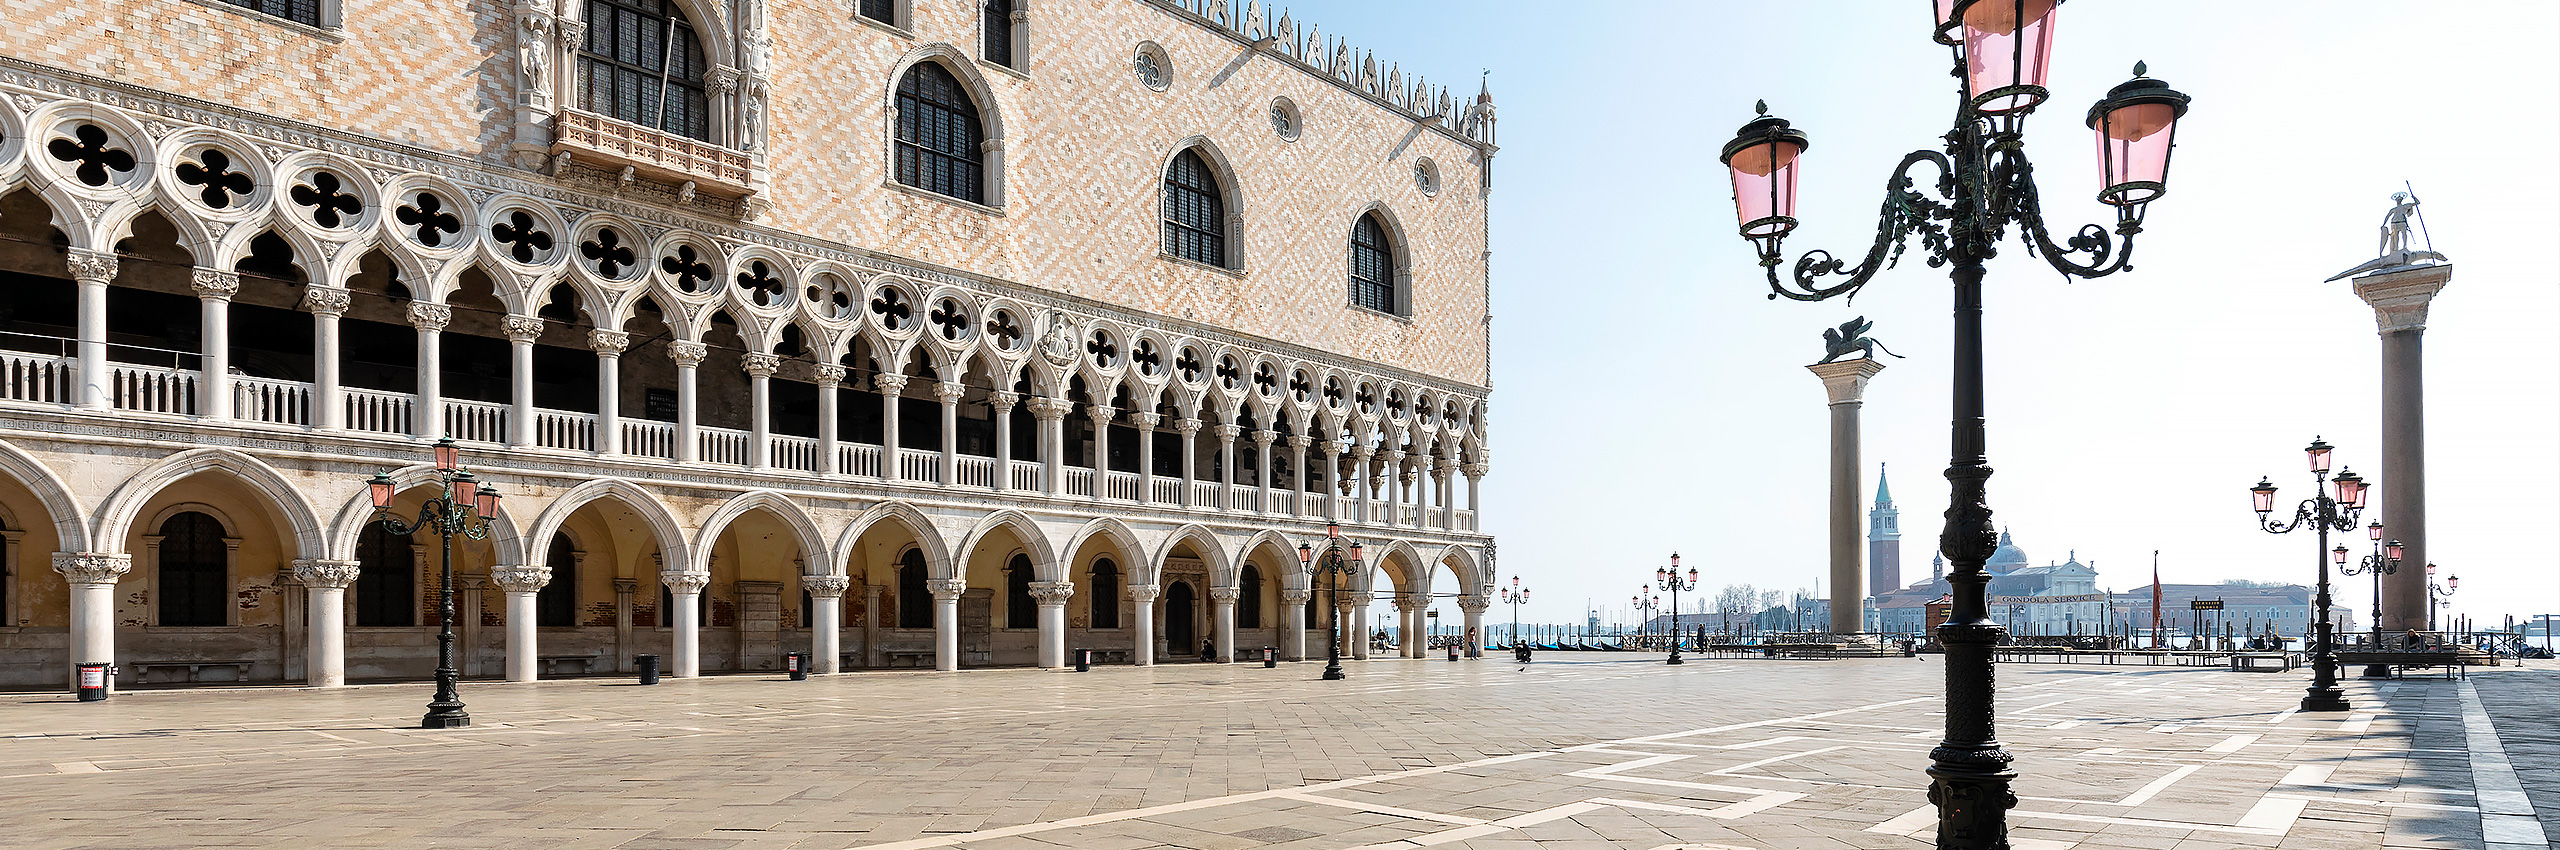 SIM-1031759 | Italy/Veneto, Venezia district, Venice, St Mark's Square, Doge's Palace | © Nicolò Miana/SIME